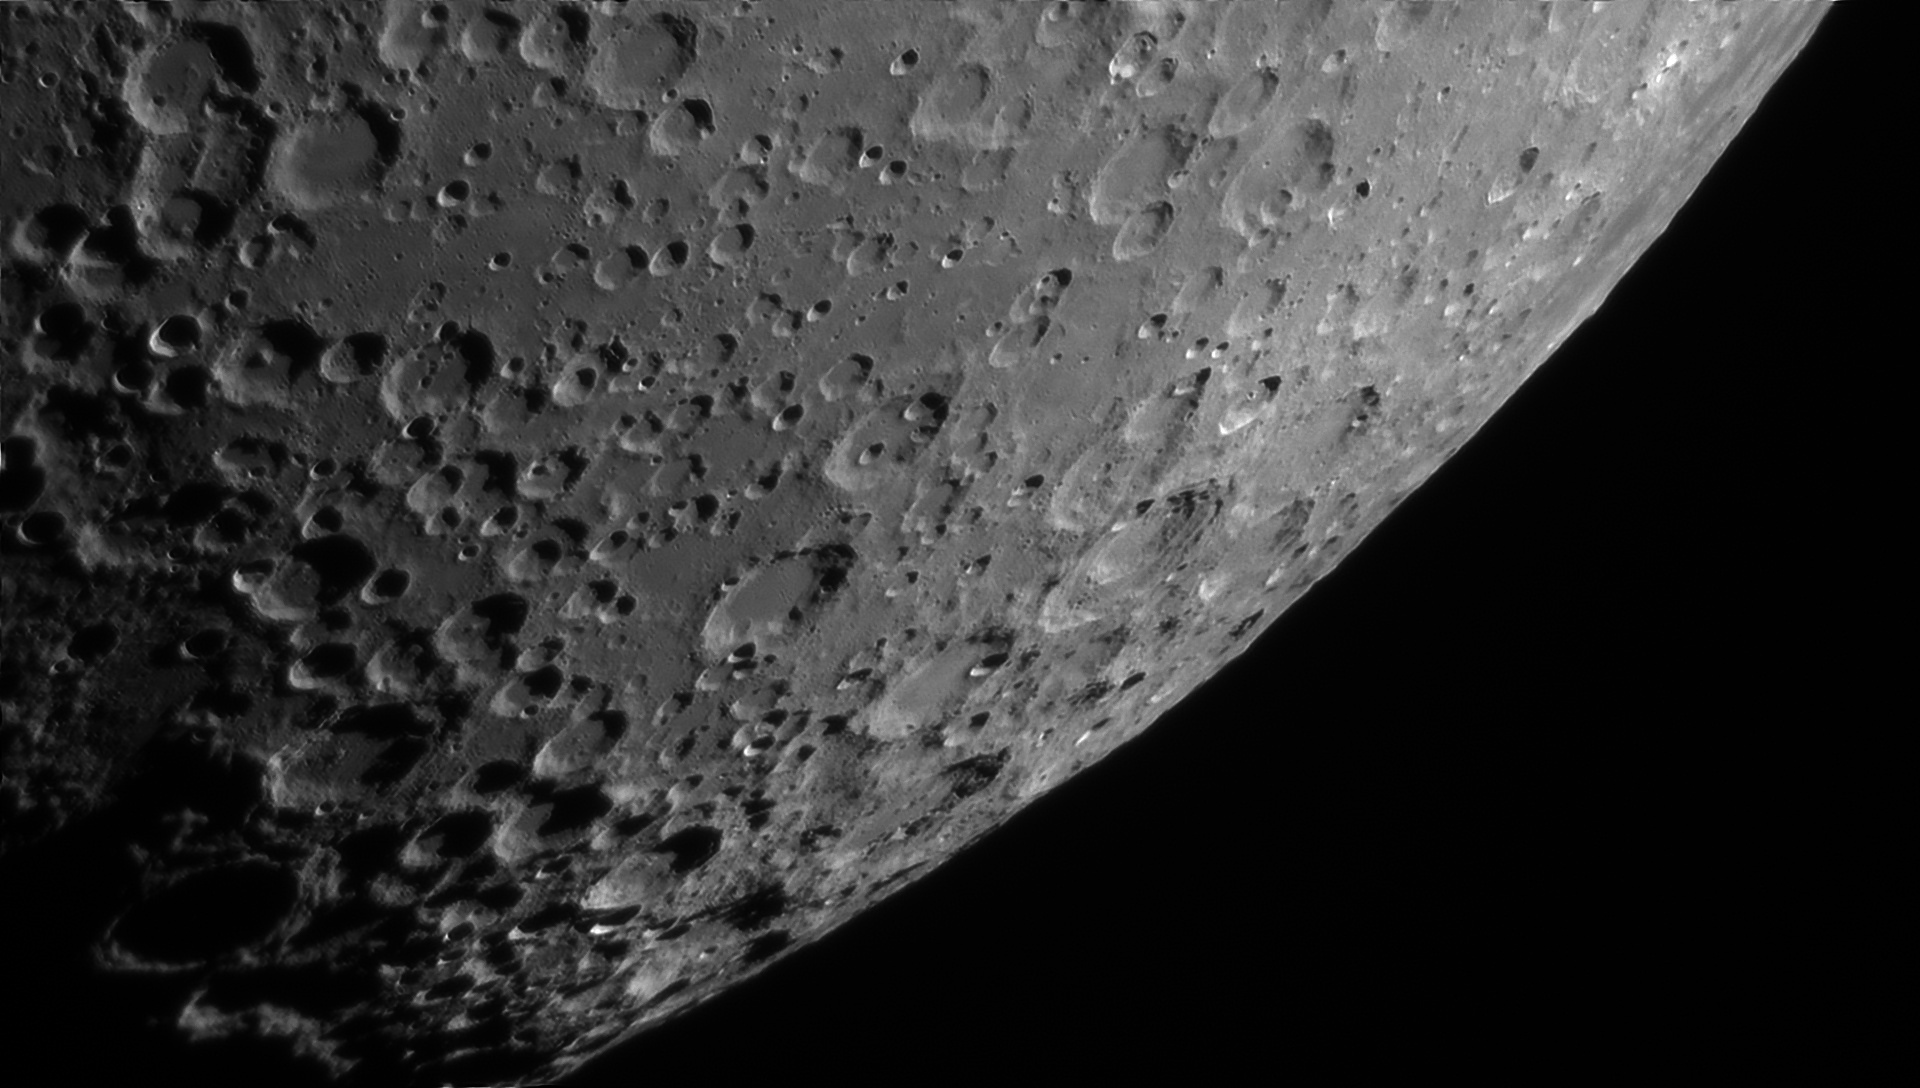 5d0185d4abc03_Moon_230423_100619_ZWOASI290MM_Rouge_23A_AS_P35_lapl4_ap679ast.jpg.698934be7d831ace28e3d4bf47889f09.jpg